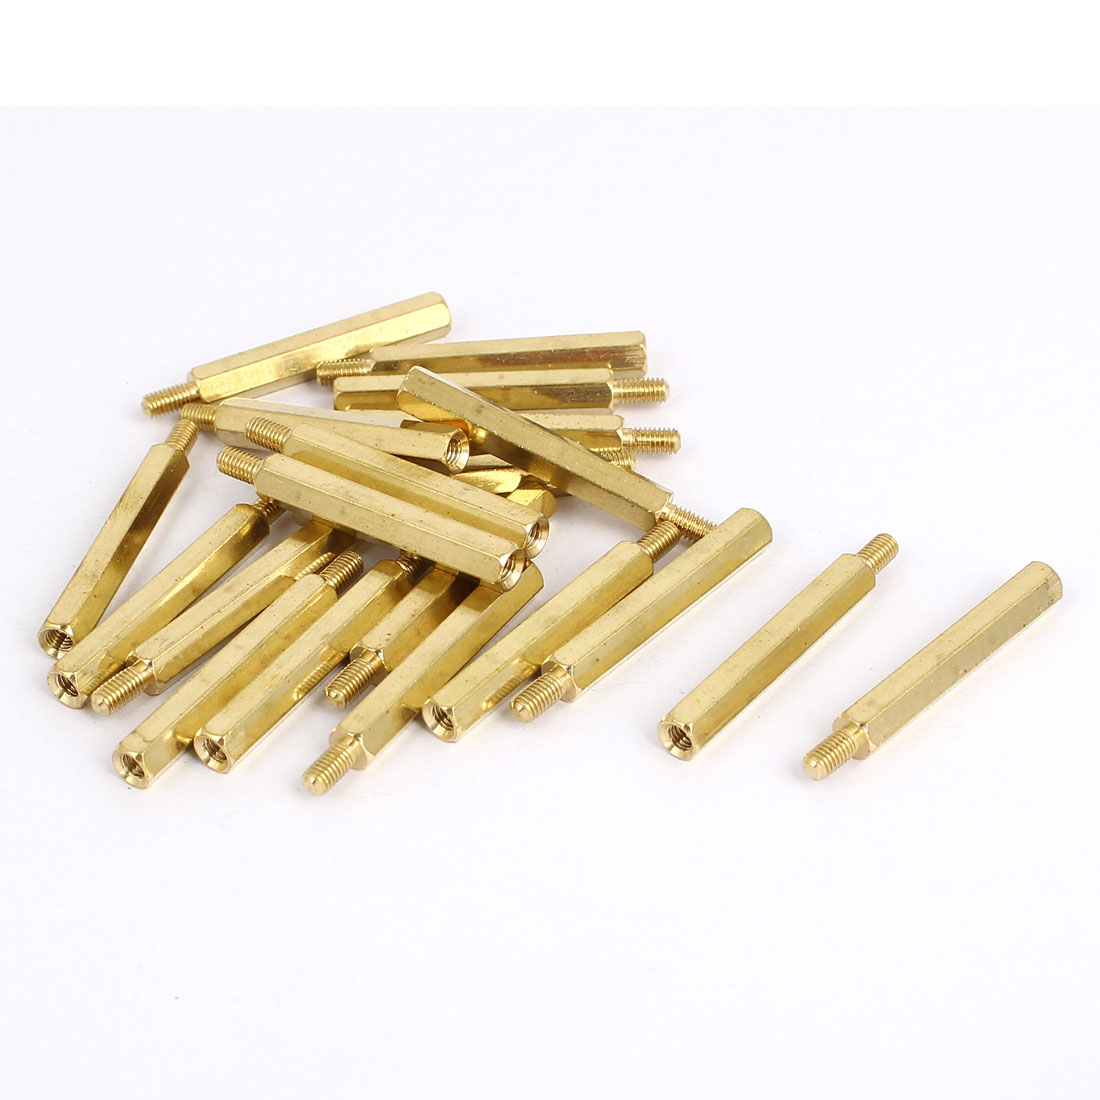 M3x30mm+6mm Brass Threaded Hex Hexagonal Male/Female Standoff Spacer Pillar 20pcs